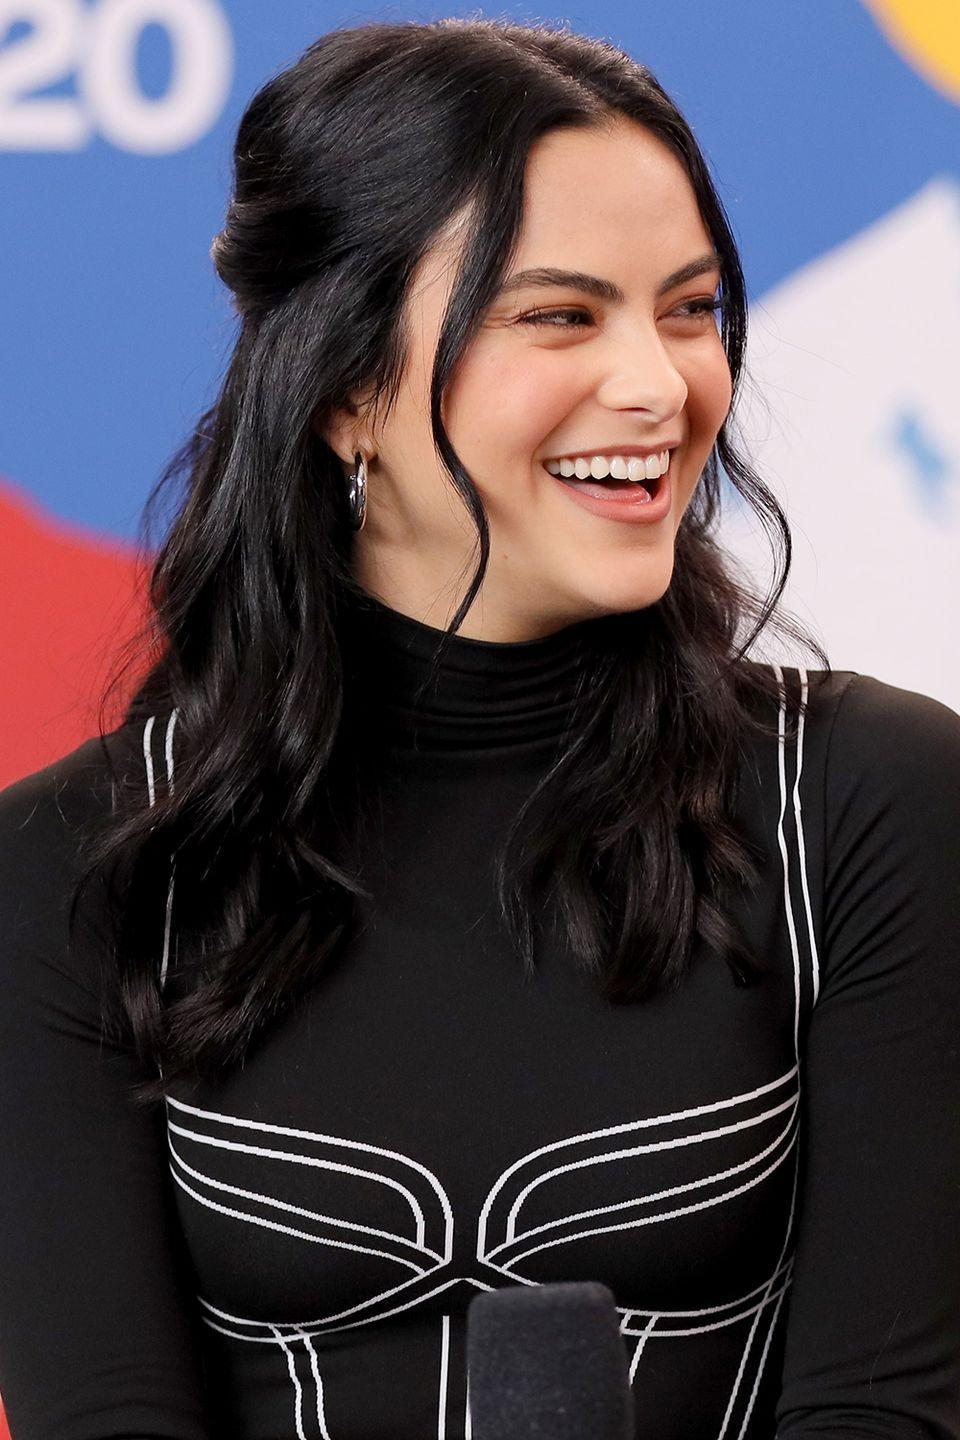 <p>Camila Mendes wears her hair in loose curls, with some gathered at the back and short layers out front to frame her face. </p>